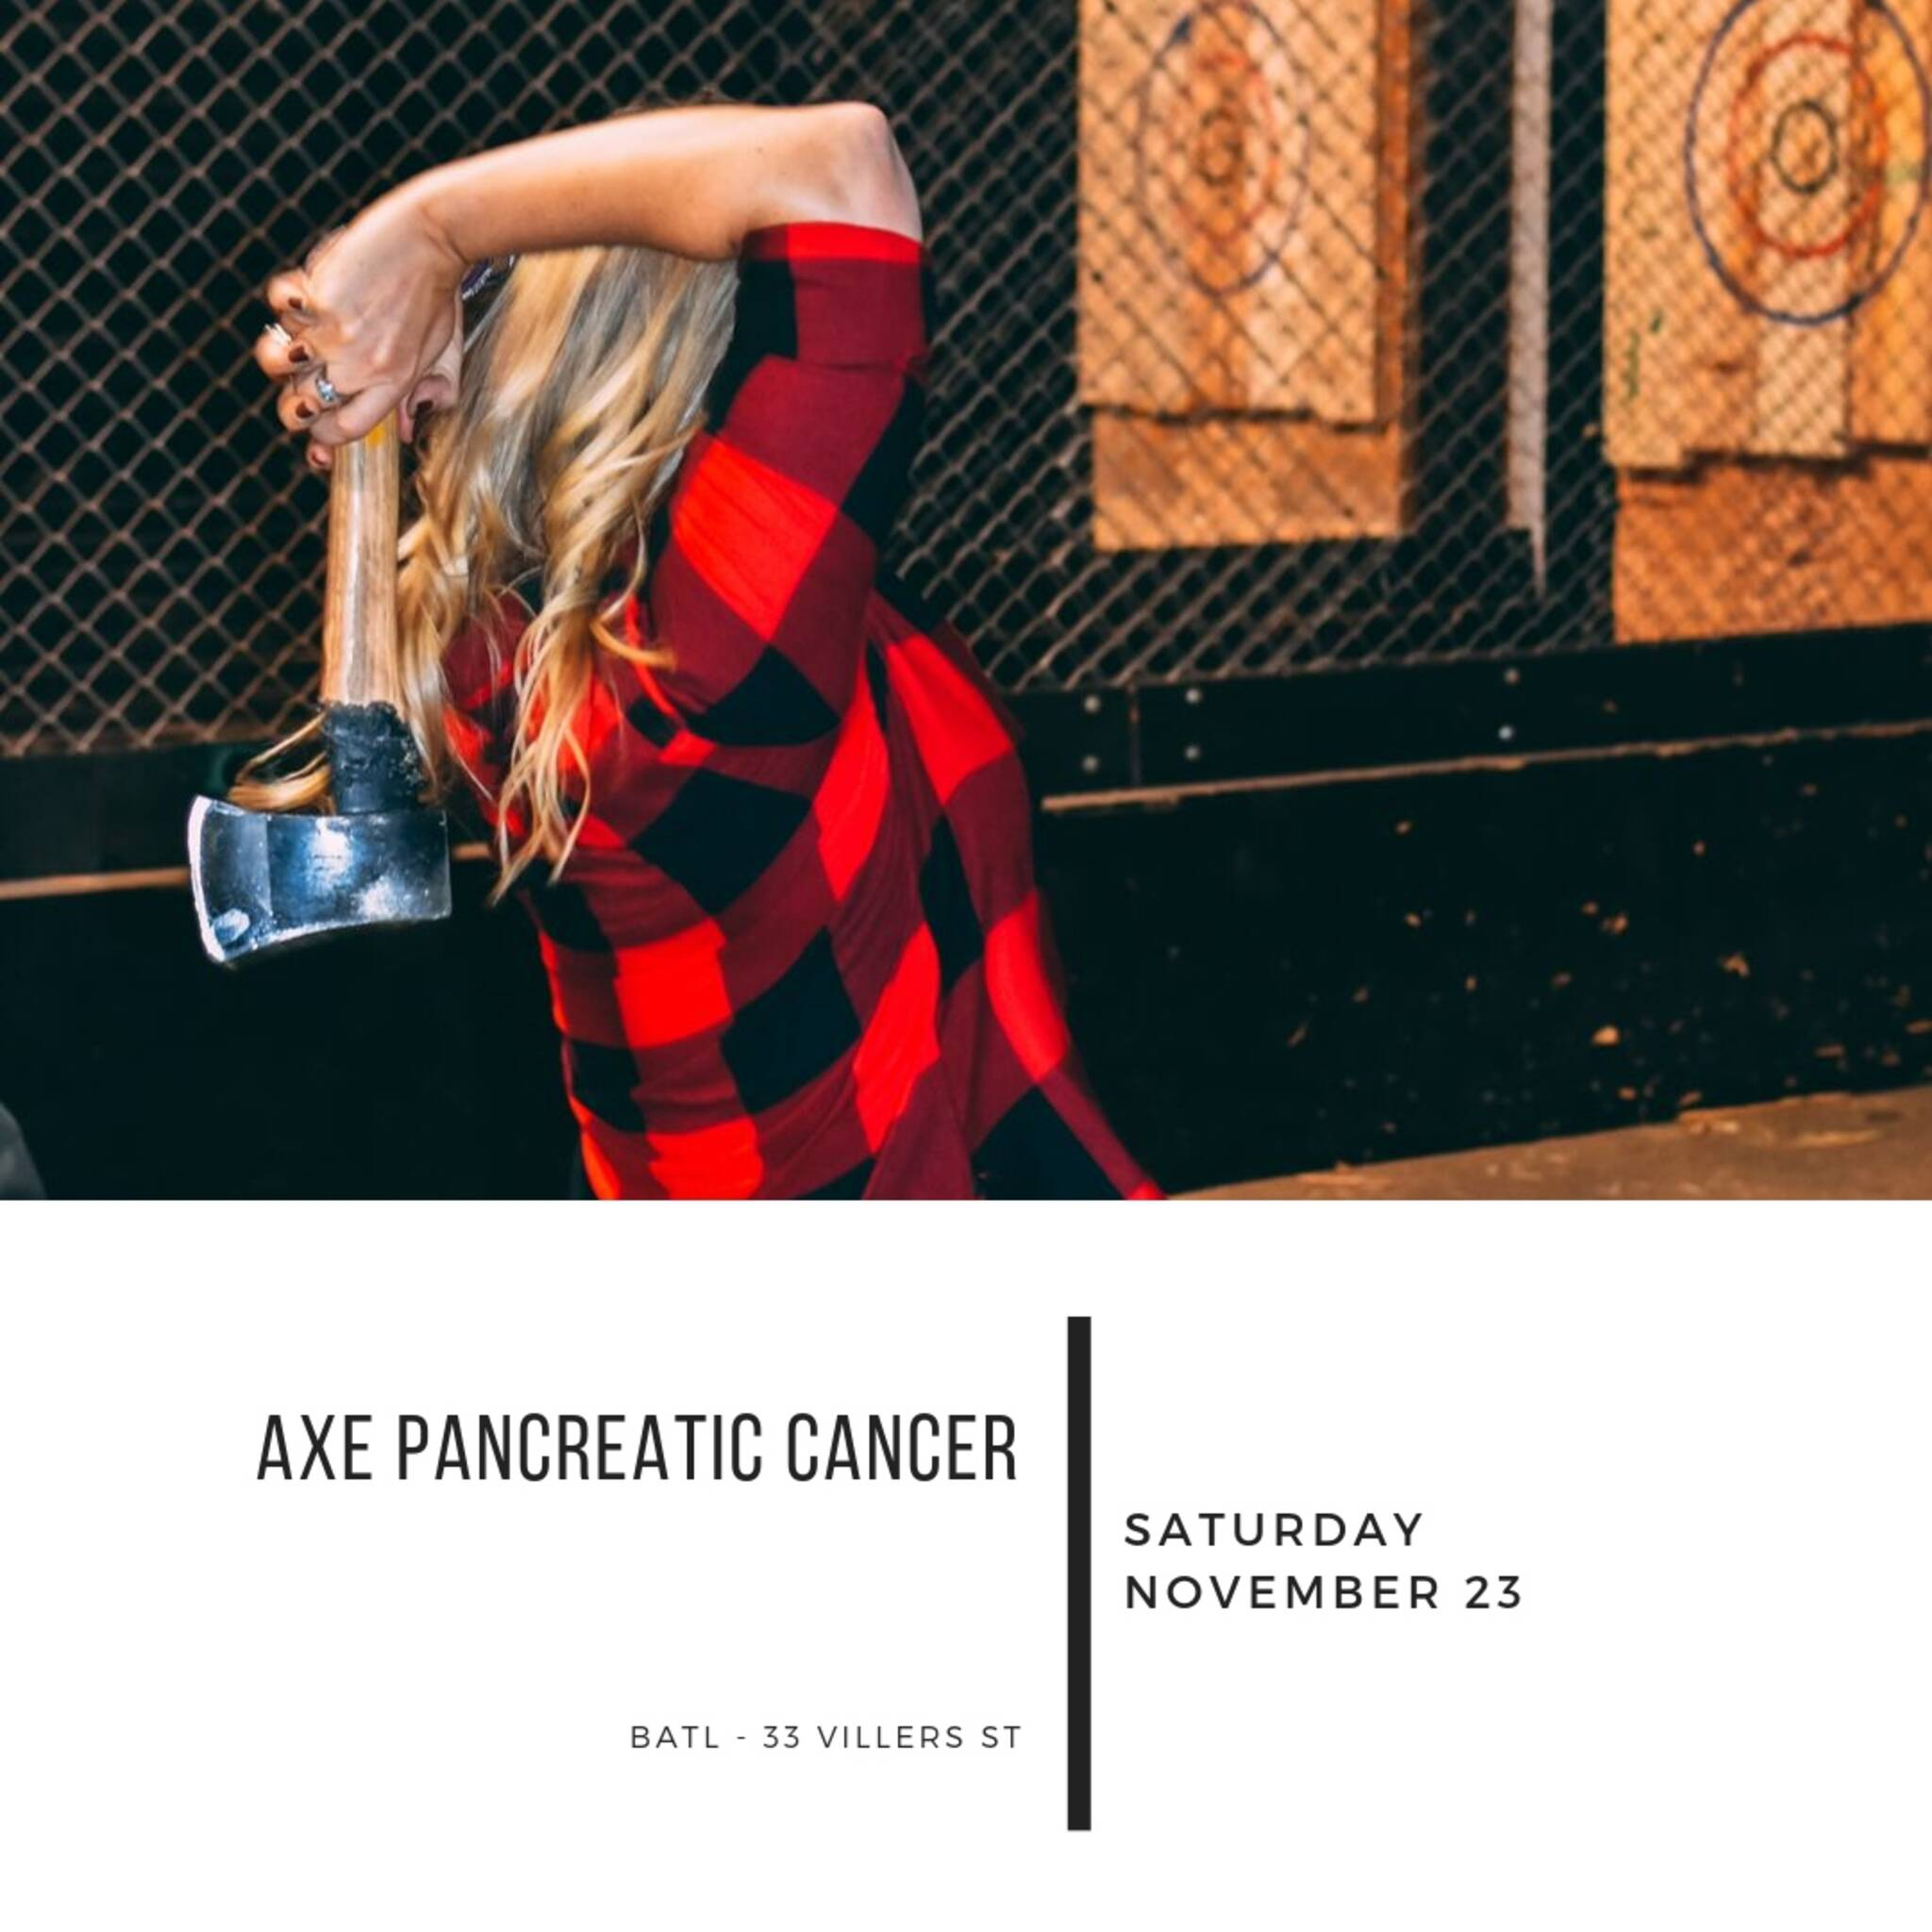 Axe Pancreatic Cancer